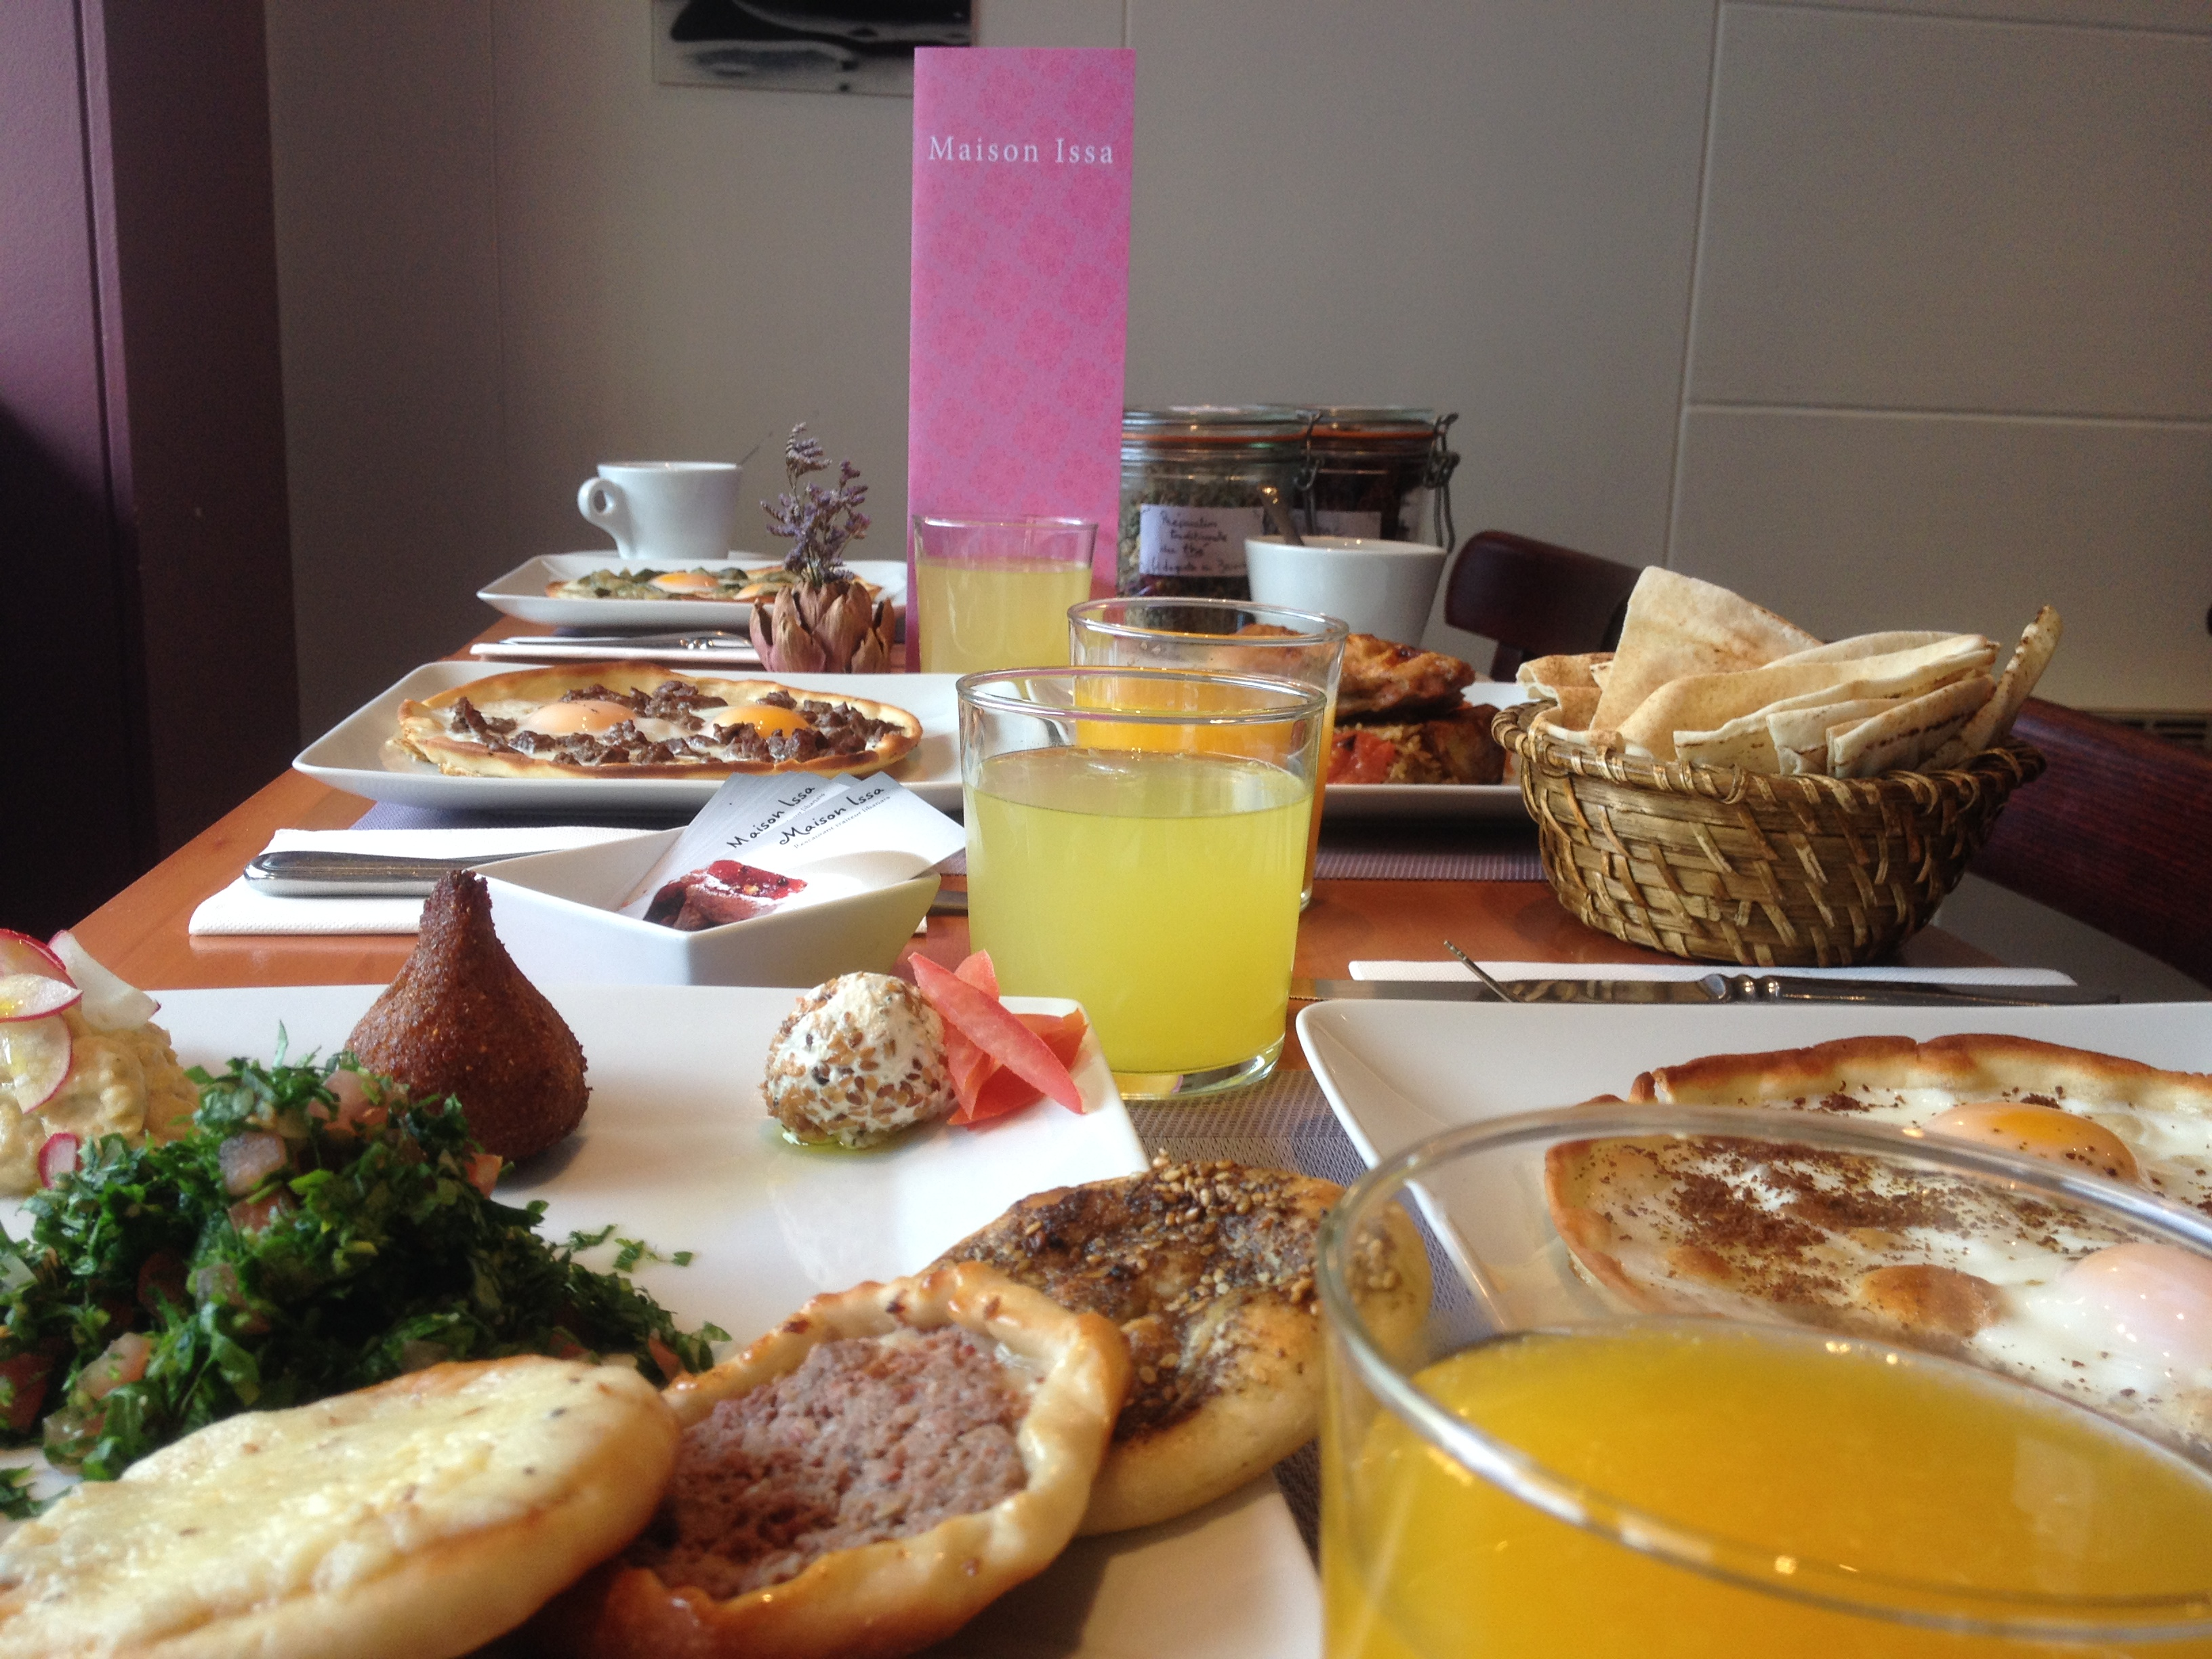 La table du brunch